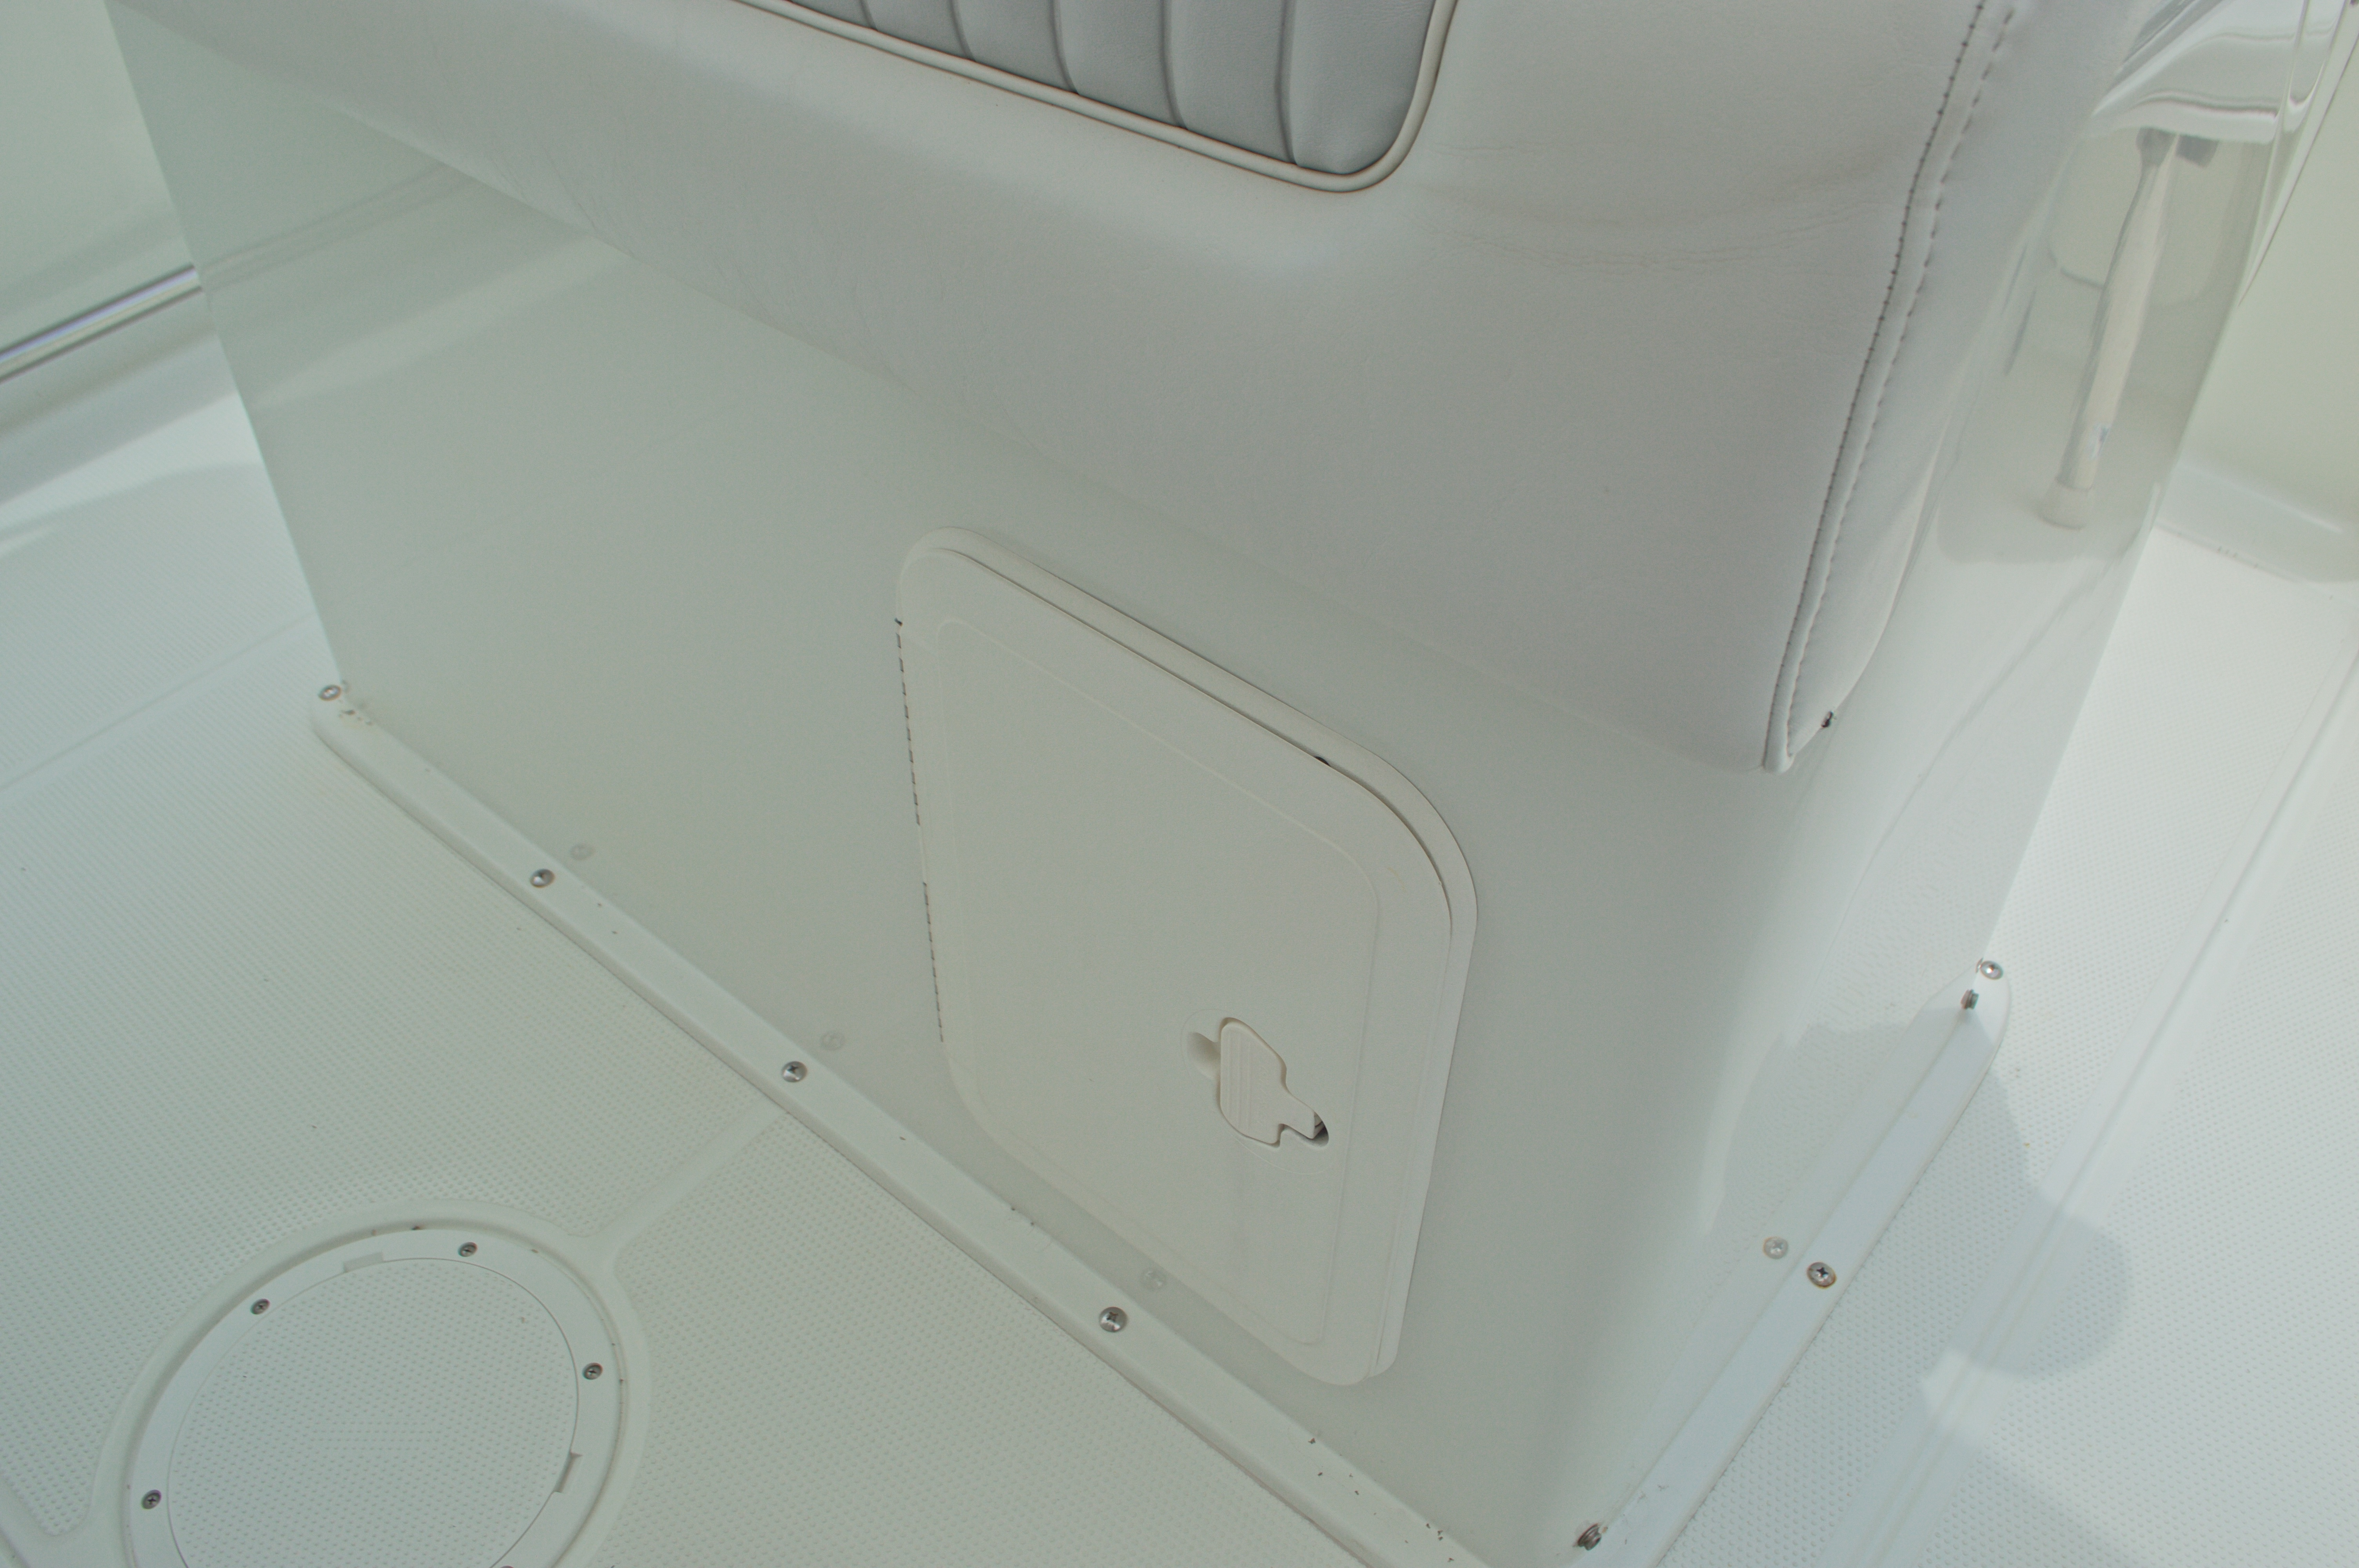 Thumbnail 24 for Used 2007 Sailfish 2360 CC Center Console boat for sale in West Palm Beach, FL